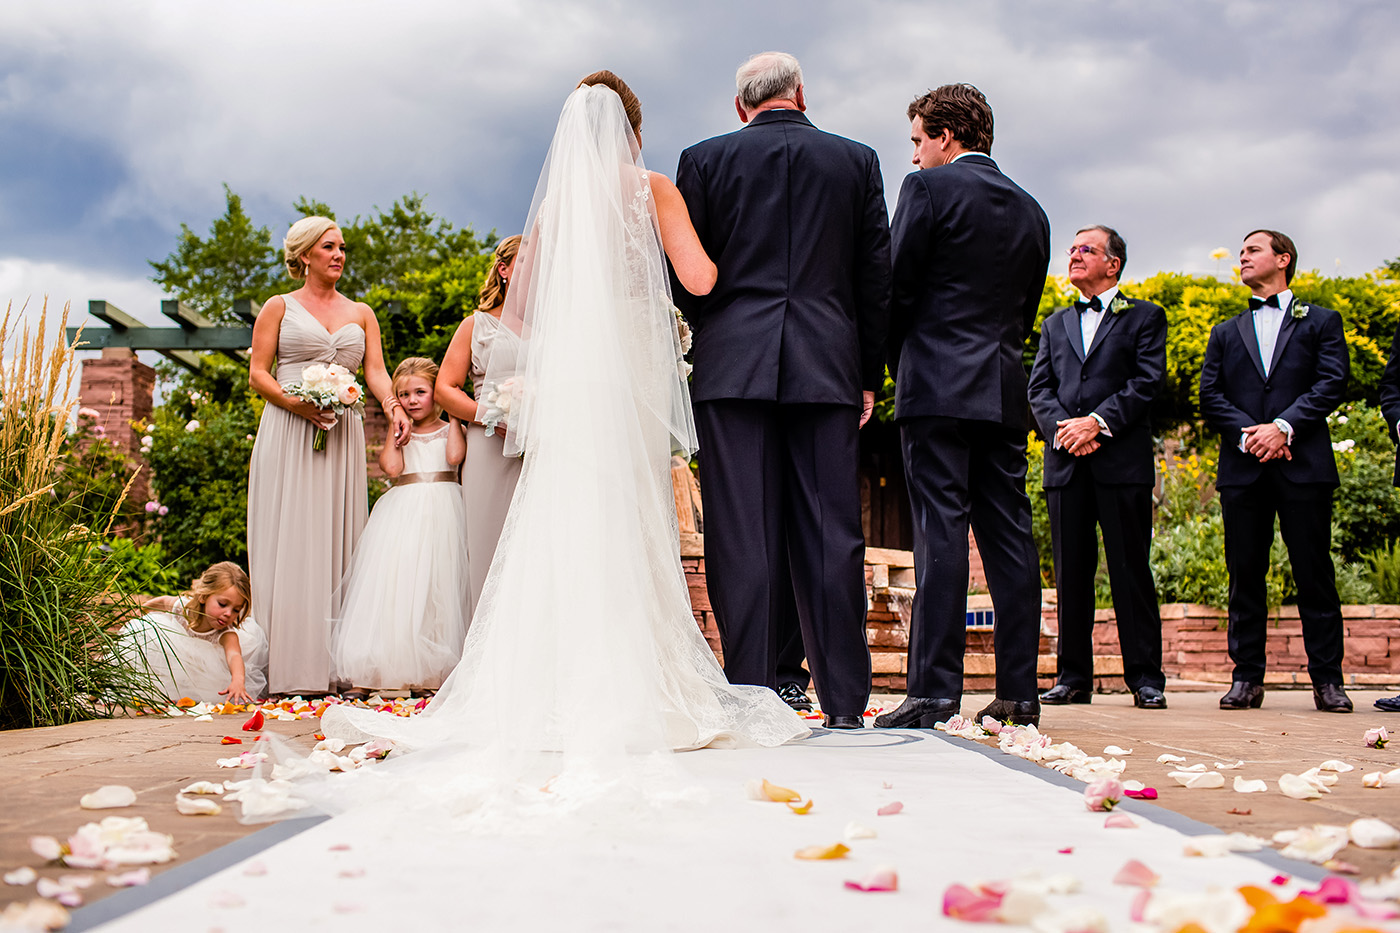 LaPosada-wedding-SantaFe-NewMexico-Carolyn-Tyler-134